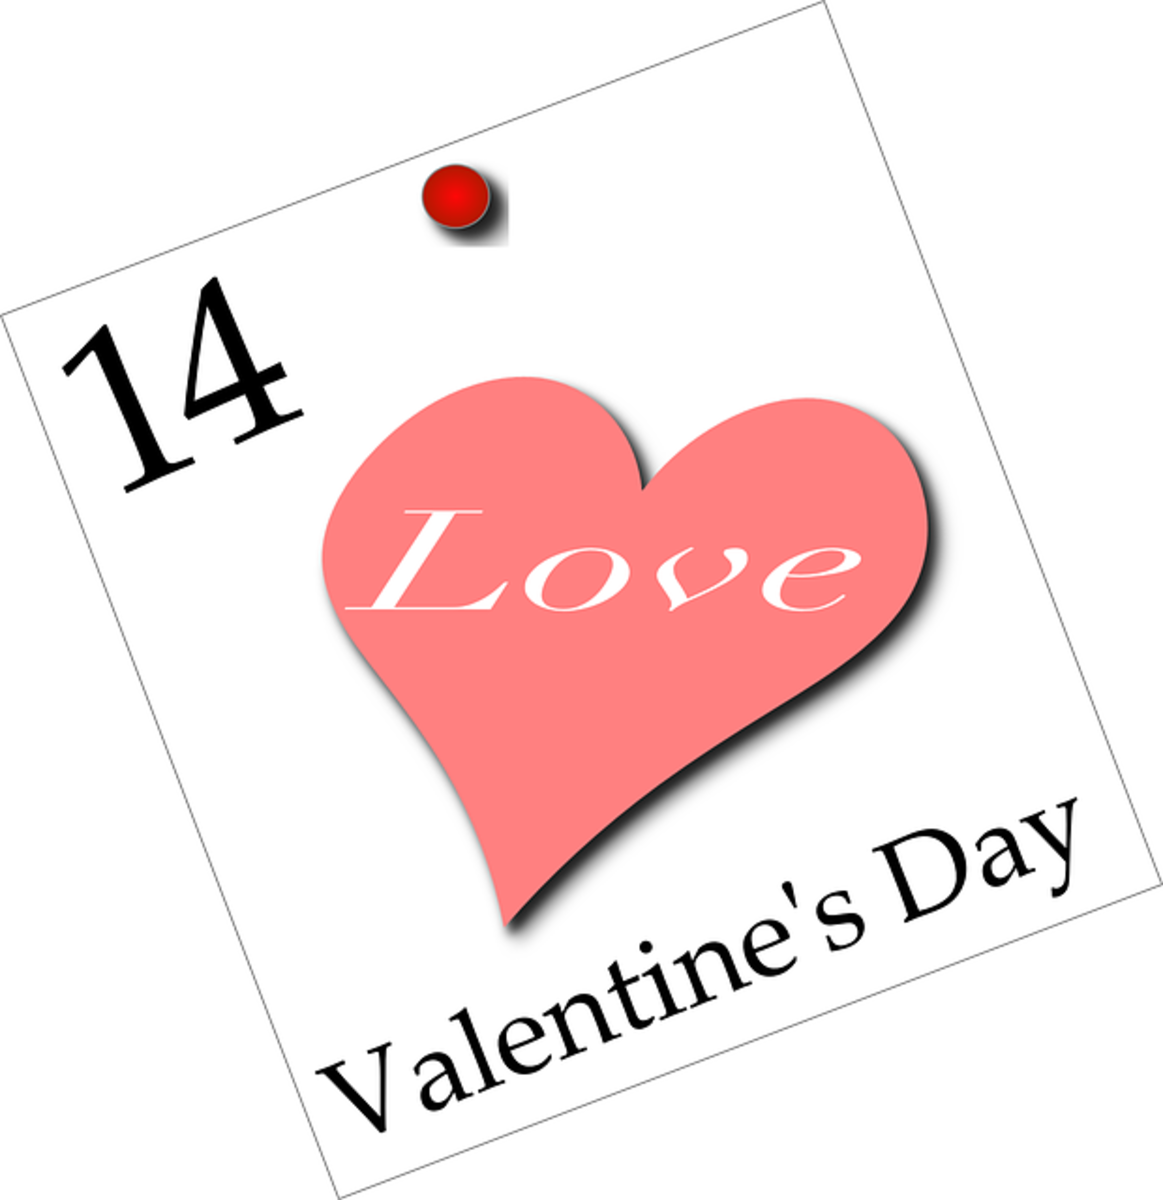 February 14th – Valentine's Day